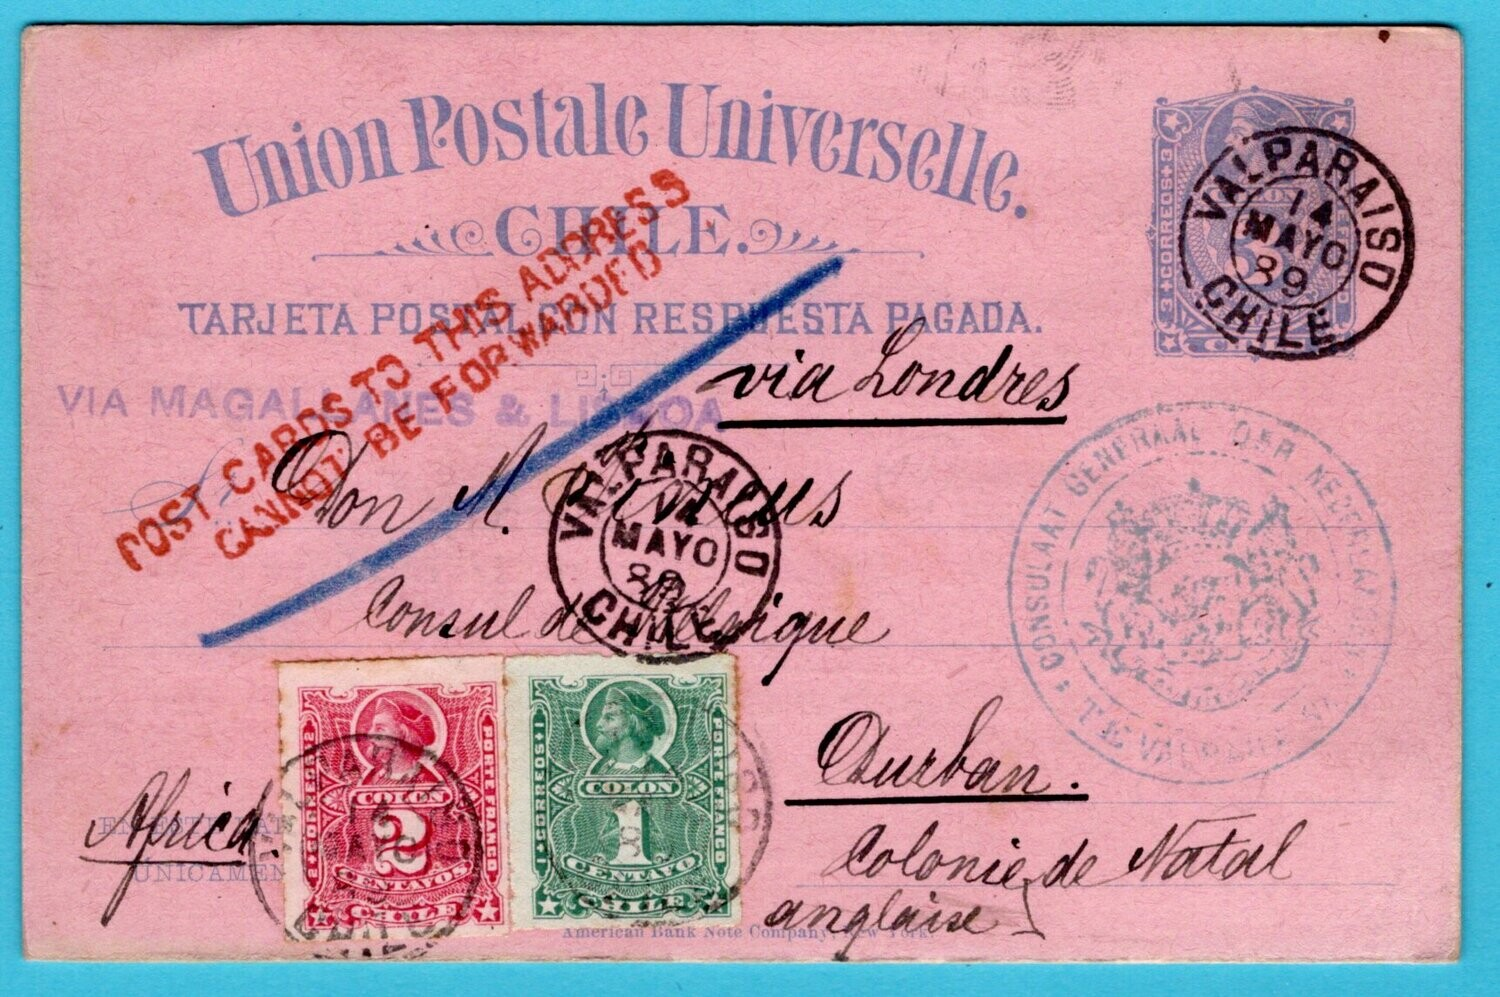 CHILE postal card with reply 1889 Valparaiso to Natal returned